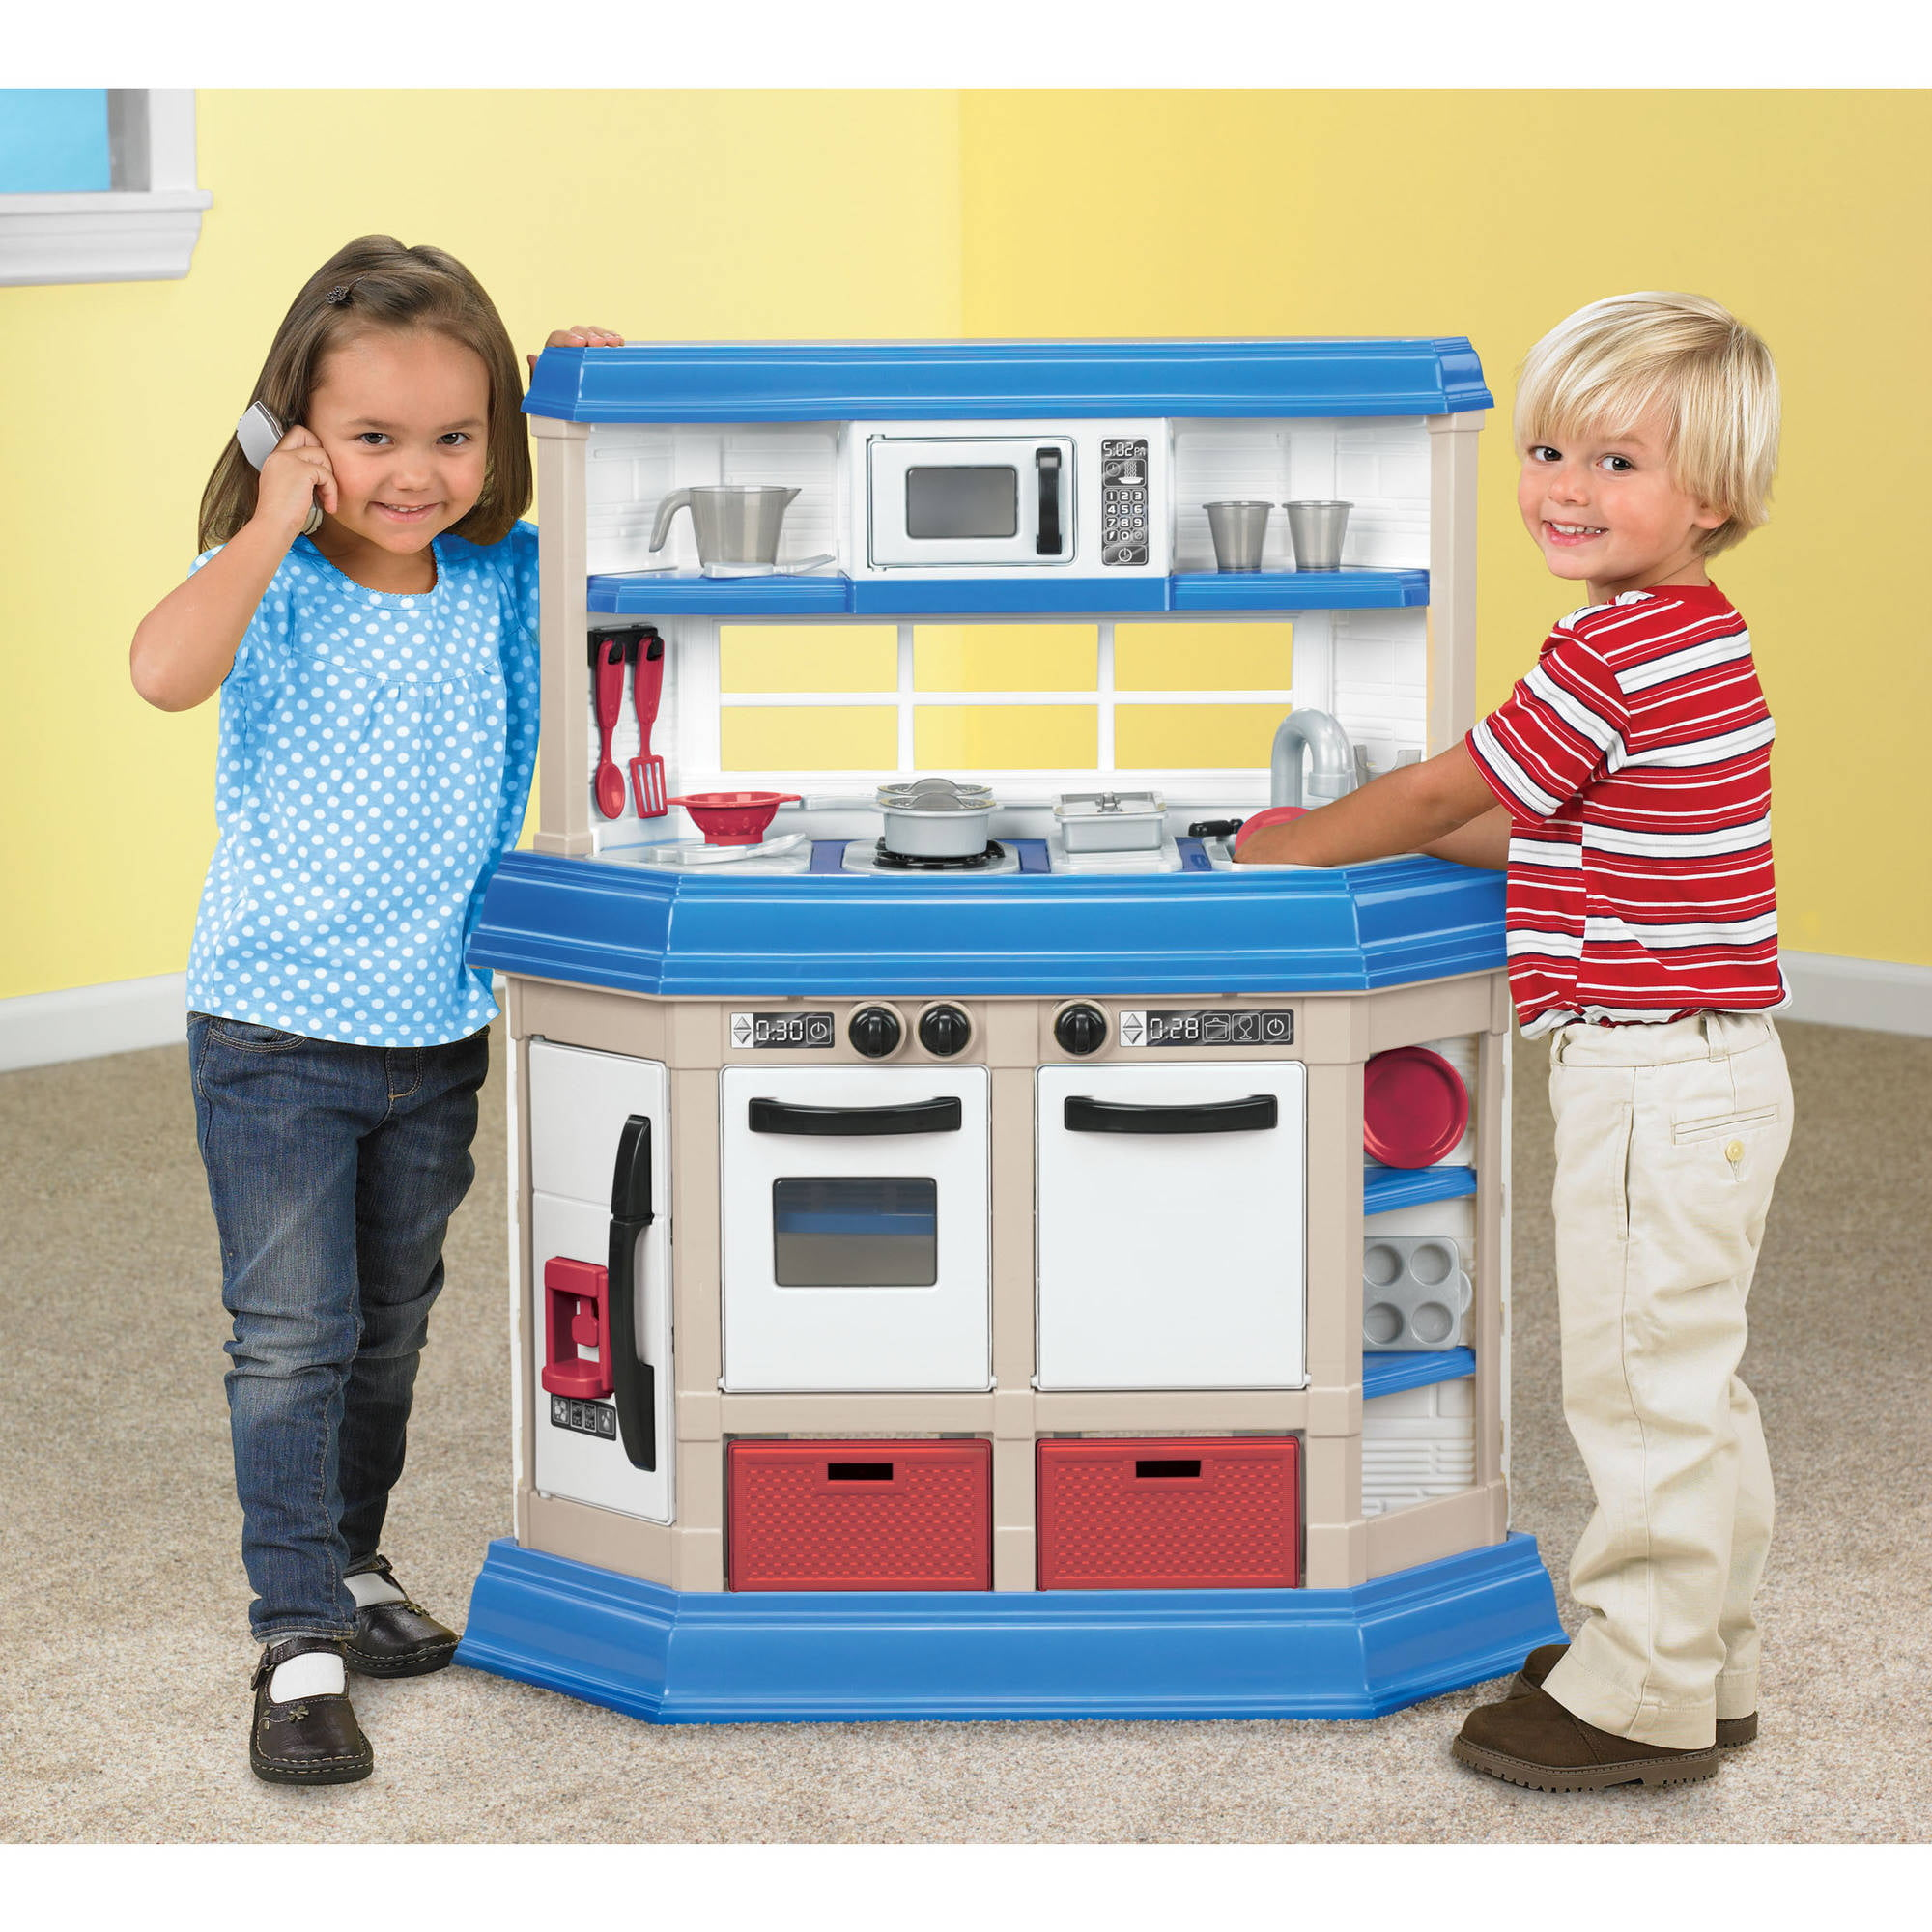 American Plastic Toys Cookin\' Kitchen with 22 accessories ...